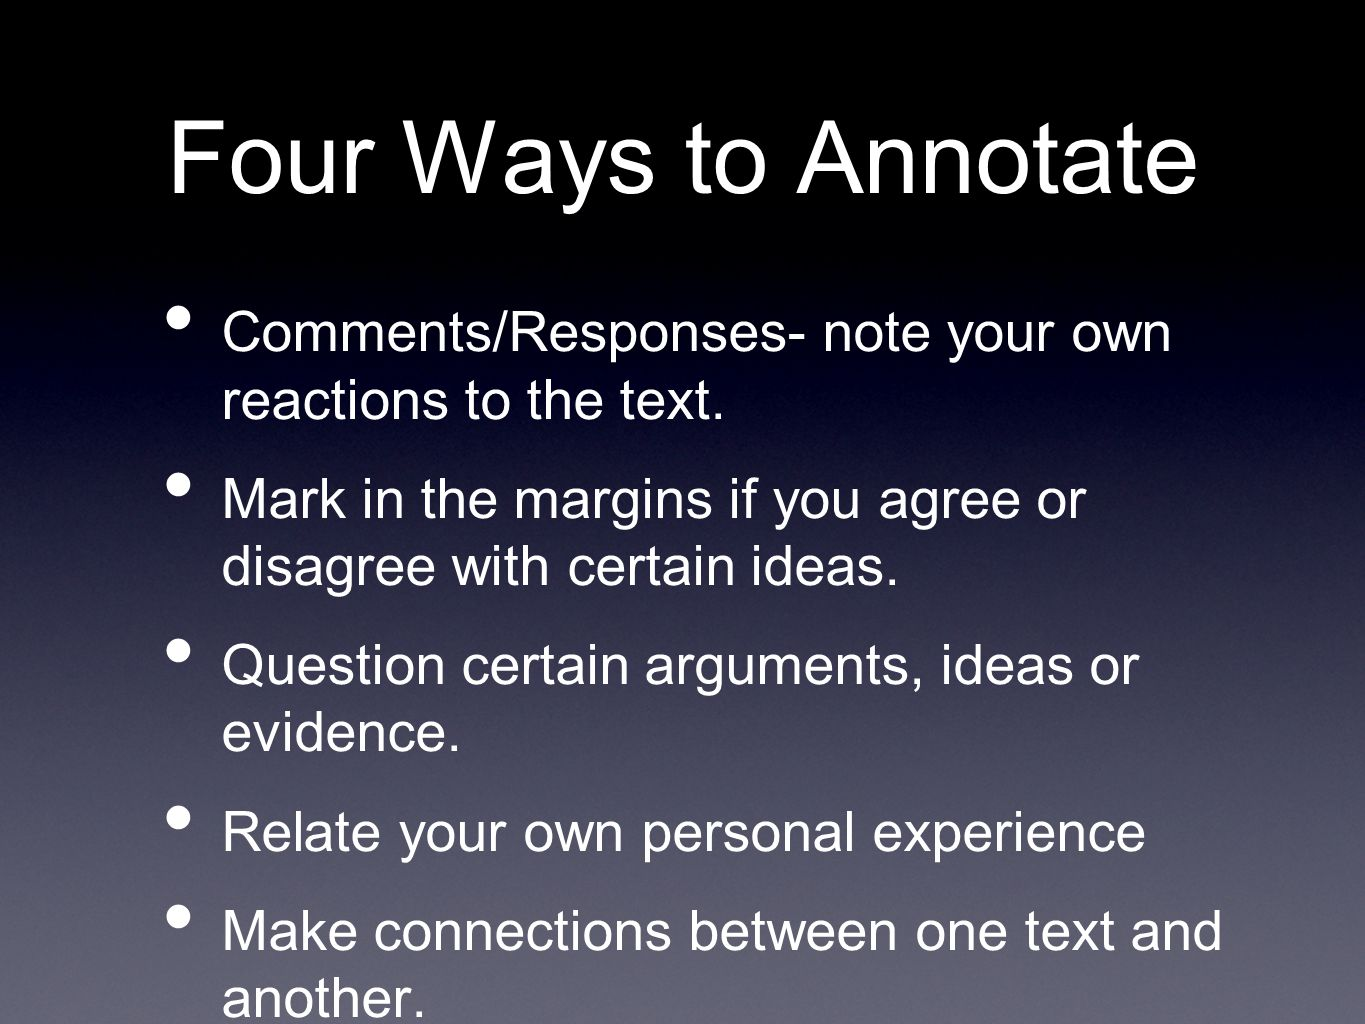 Four Ways to Annotate Comments/Responses- note your own reactions to the text.